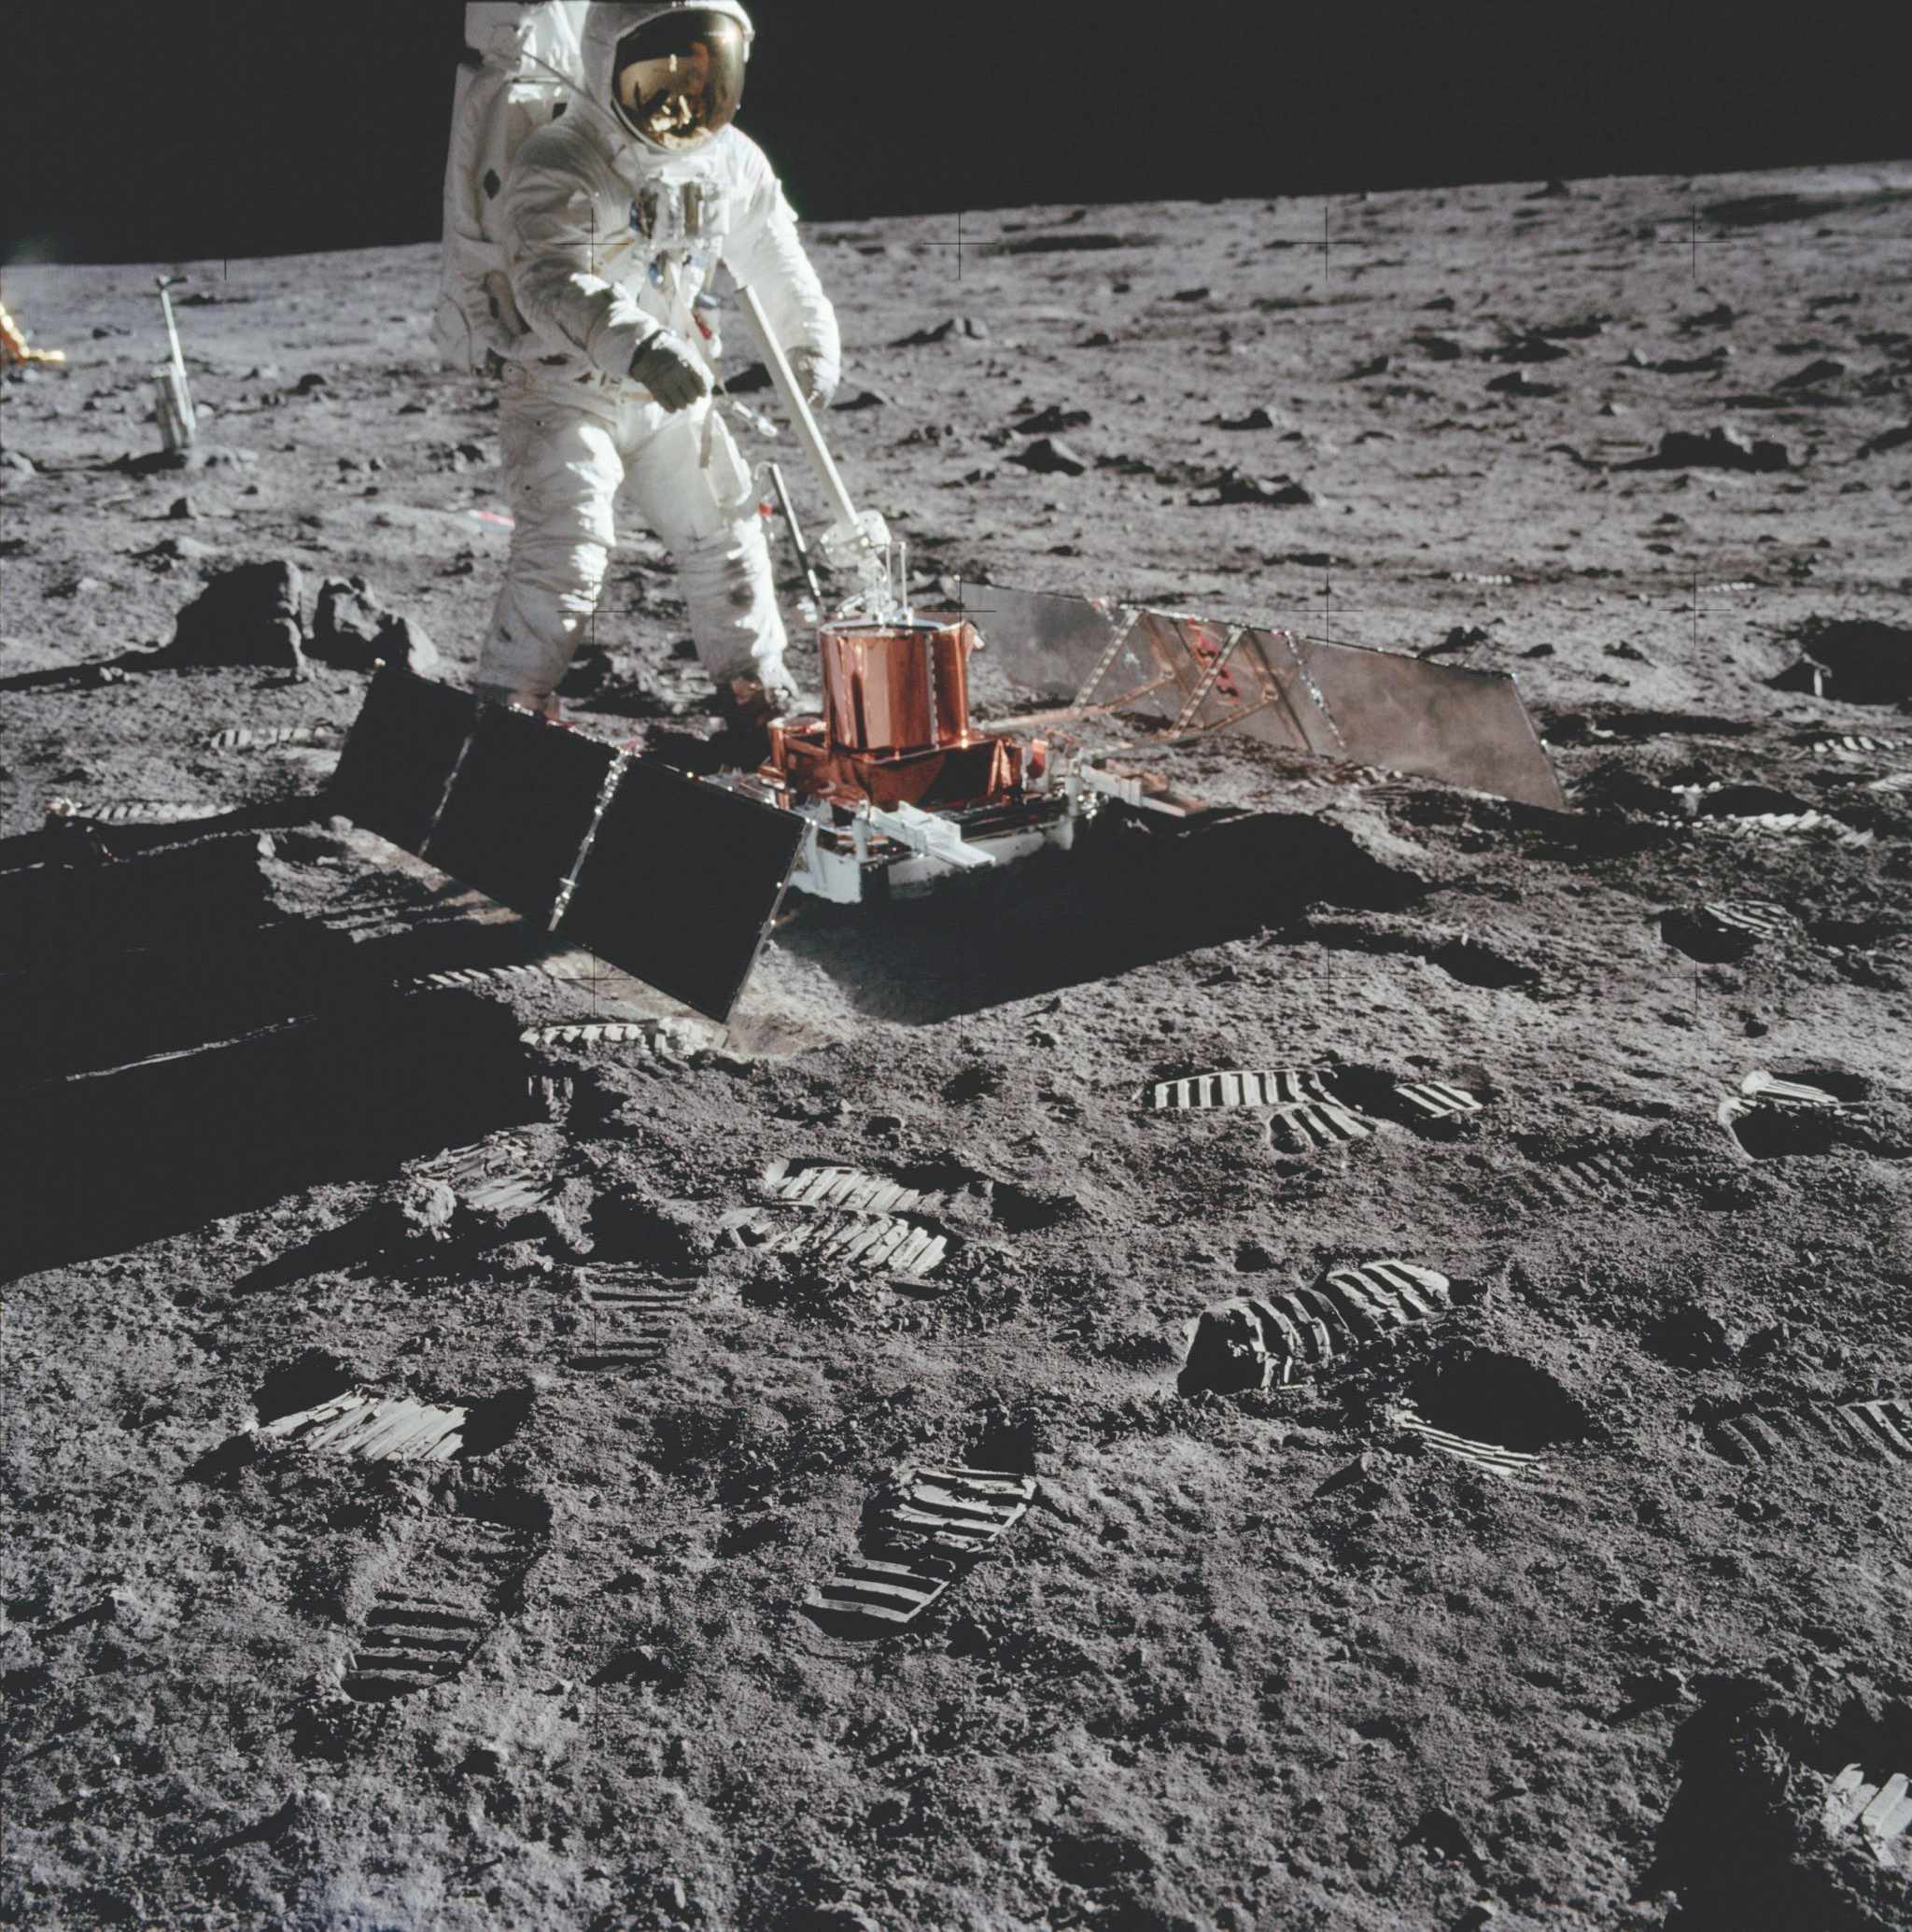 Four very sensitive seismometers measured moonquakes in the lunar crust or vibrations caused by meteorite impacts. Any relative motion was recorded as an electrical impulse and sent directly to Earth. Power came from two solar panels and a thermal shroud protected it from the extremes changes of temperature. The 21-day experiment found that seismic events on the Moon are less frequent than earthquakes on Earth. It also recorded erosion events, thought to be landslides along the walls of relatively young craters. © NASA/JPL